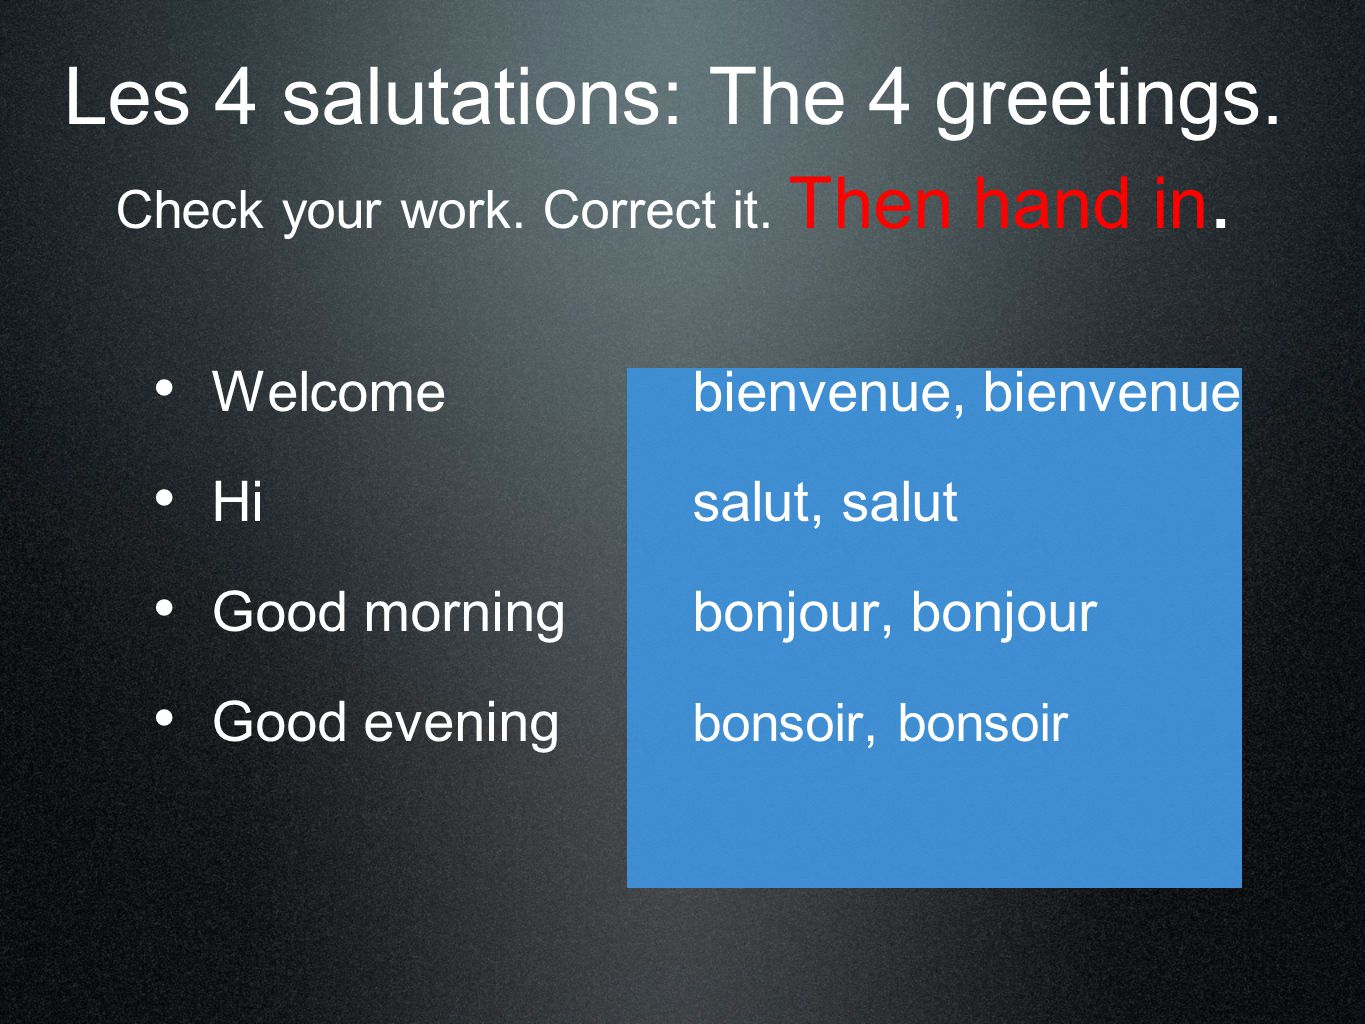 Les 4 salutations: The 4 greetings. Check your work.